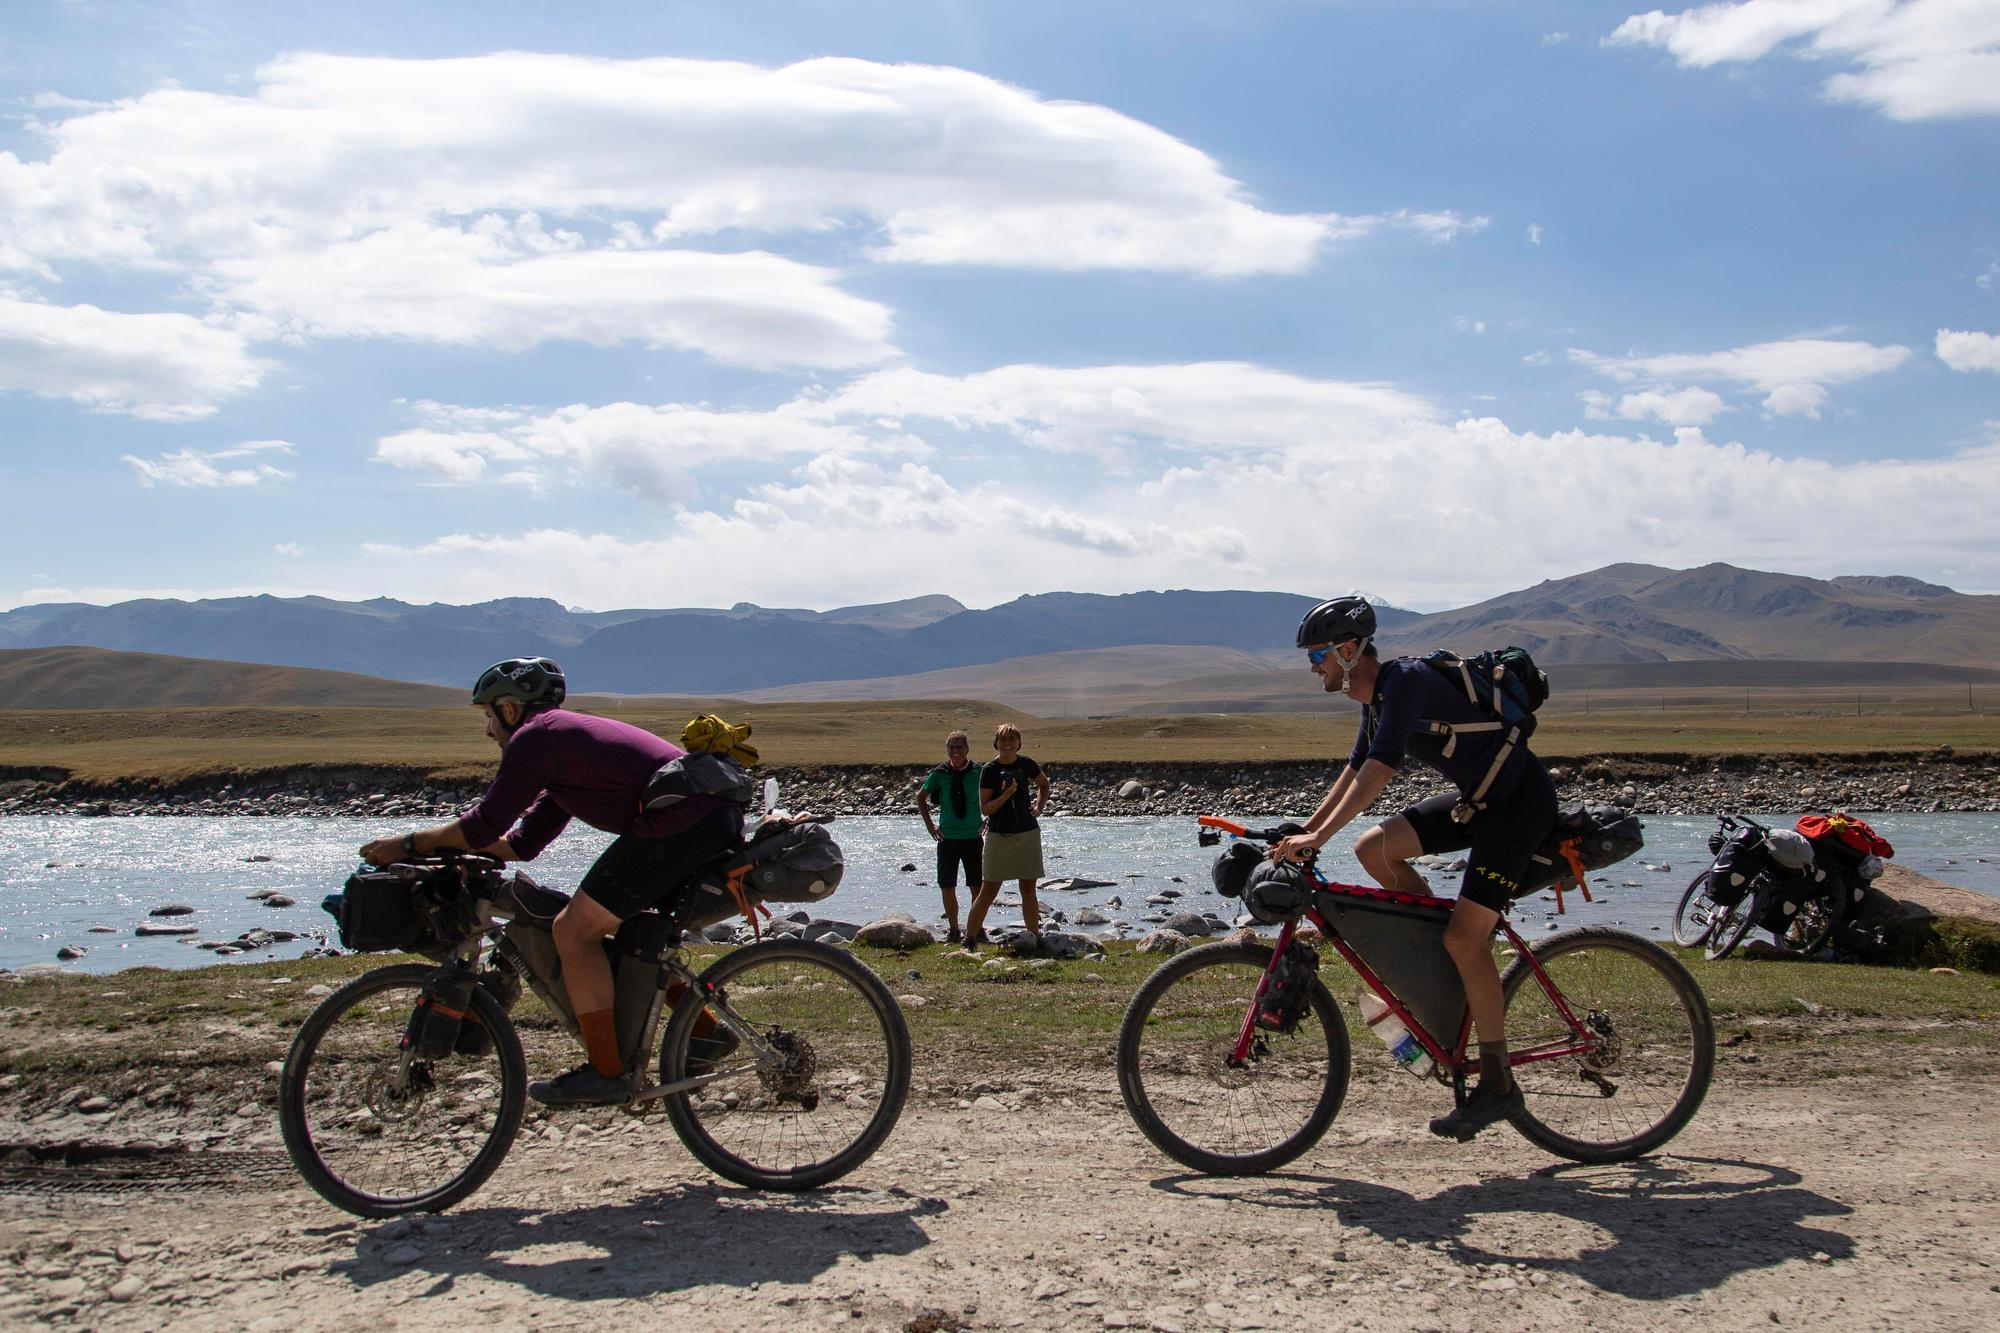 Stefan Amato and David Sear ride towards checkpoint three. (Rugile Kaladyte)